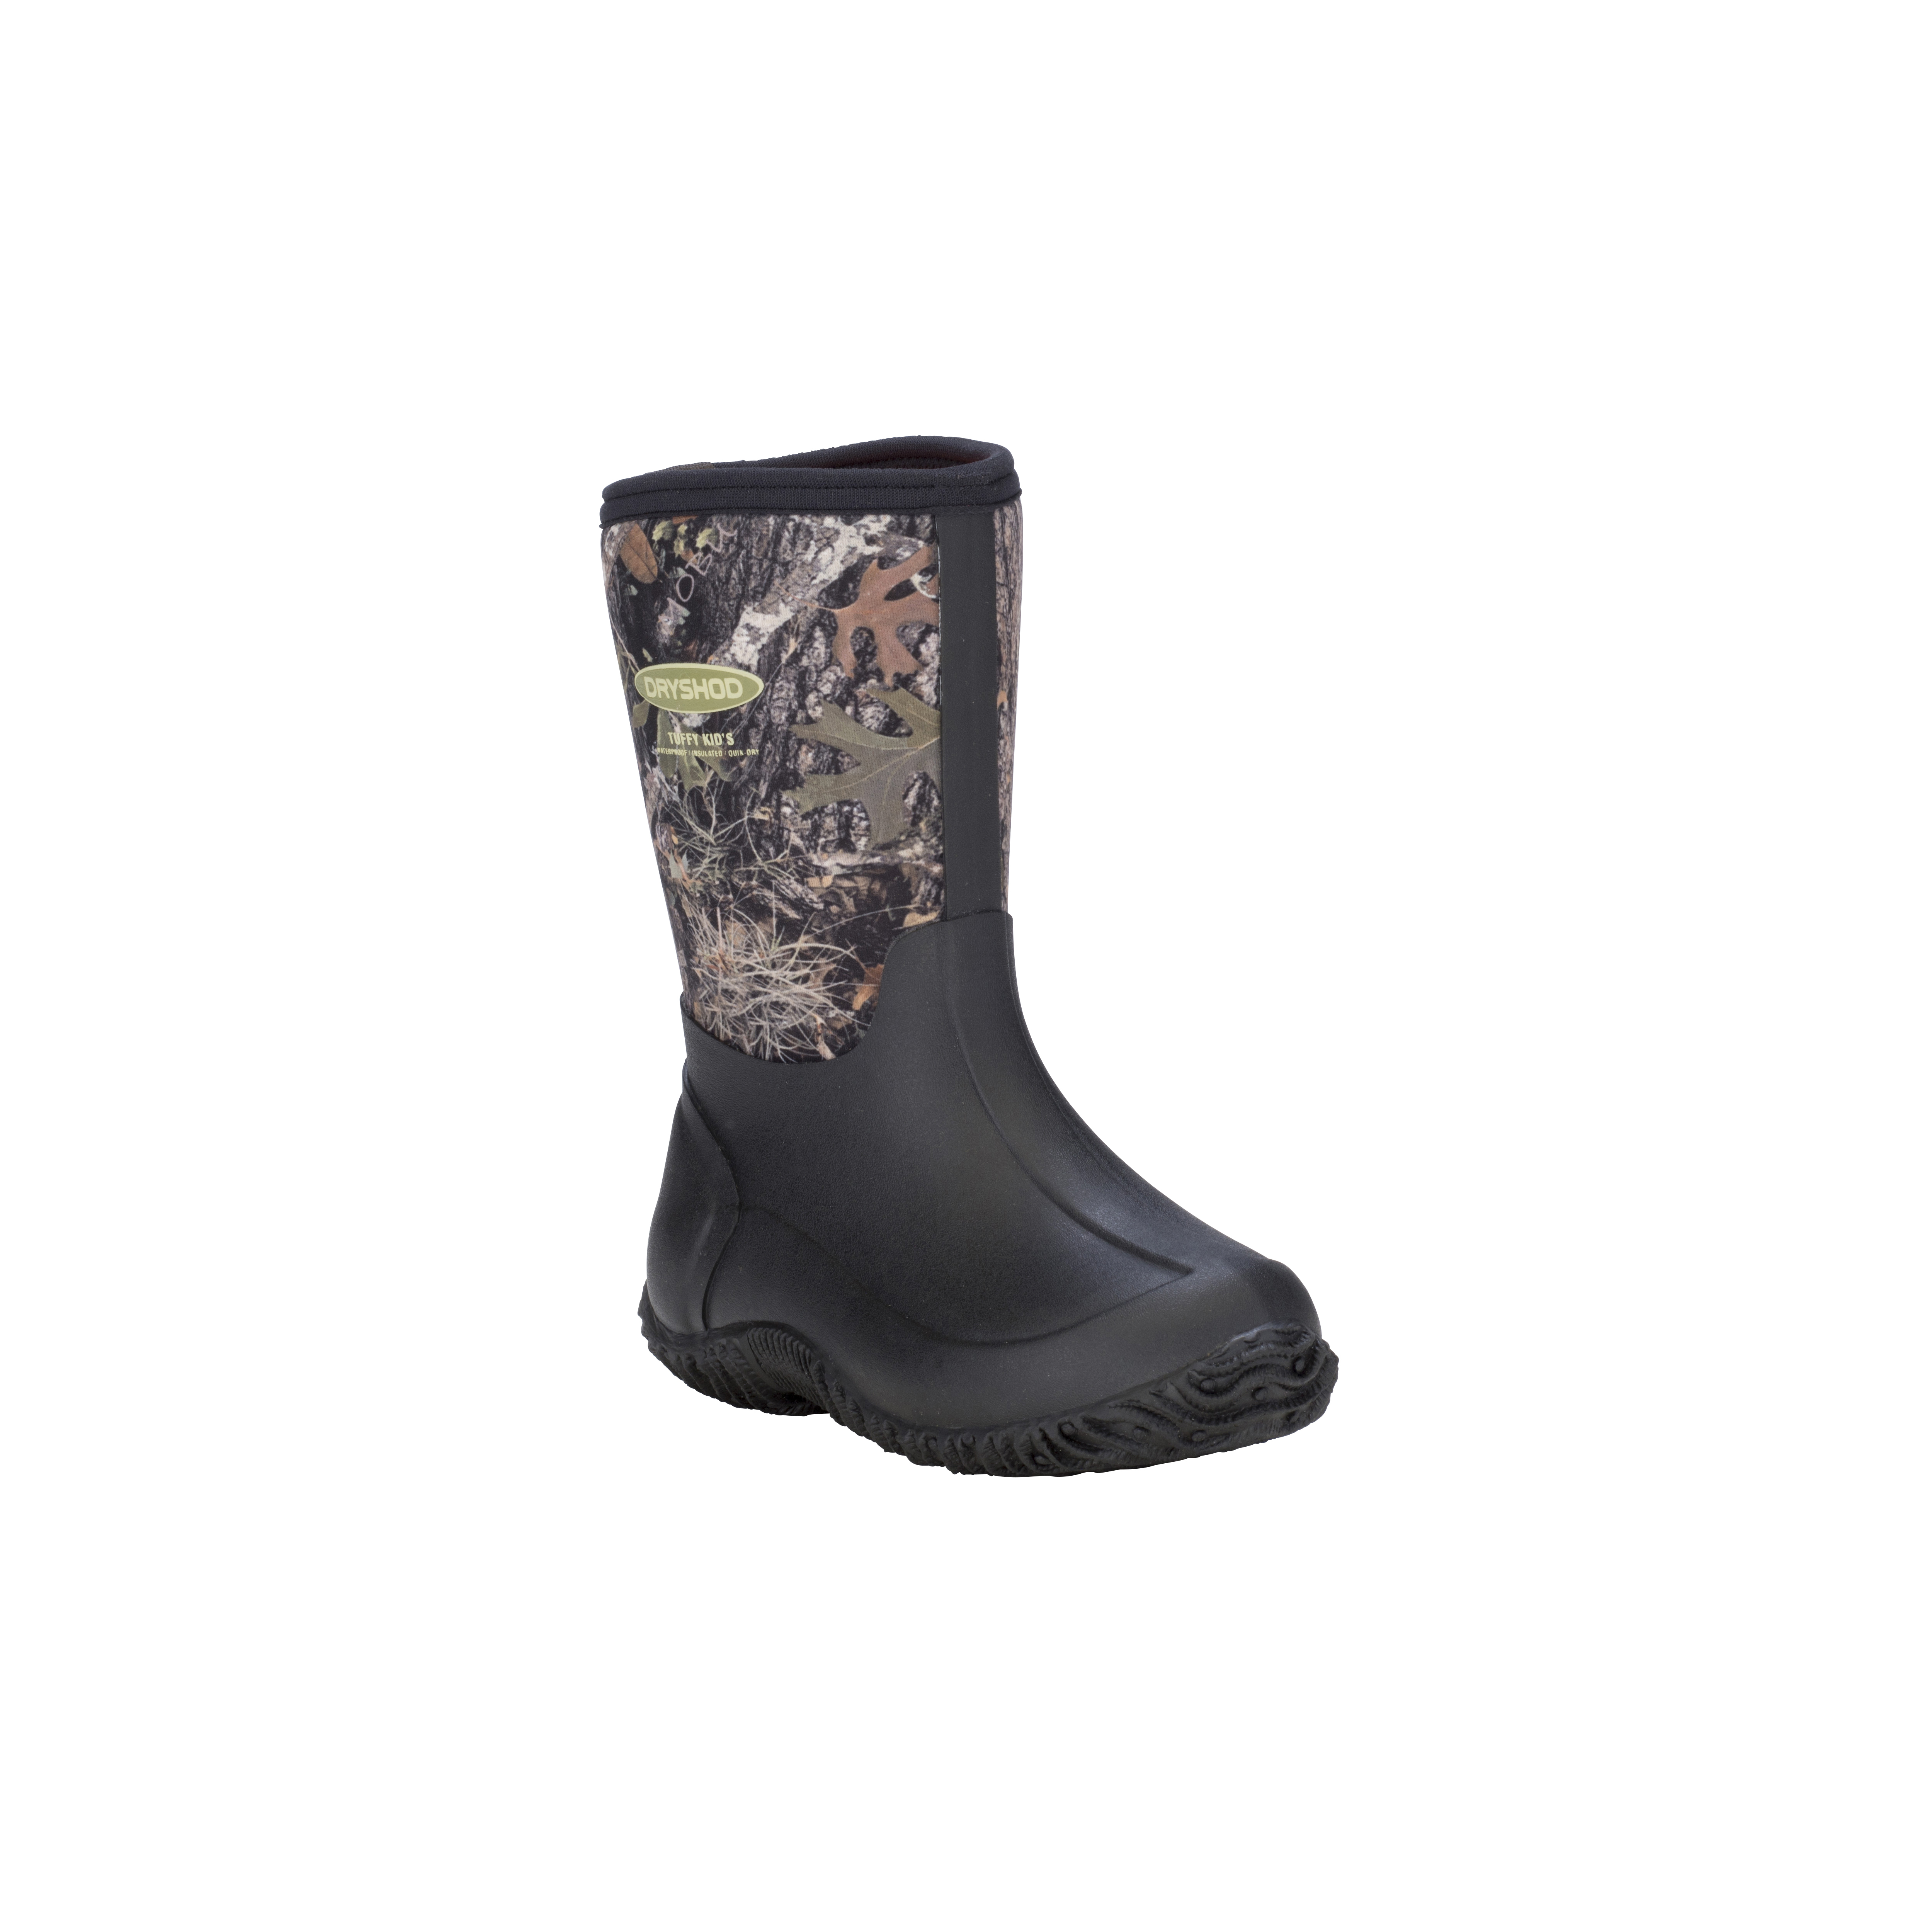 Dryshod Kids' Tuffy All Season Sport Boots - Mid/Hi Cut - Size C12, Camo/Timber